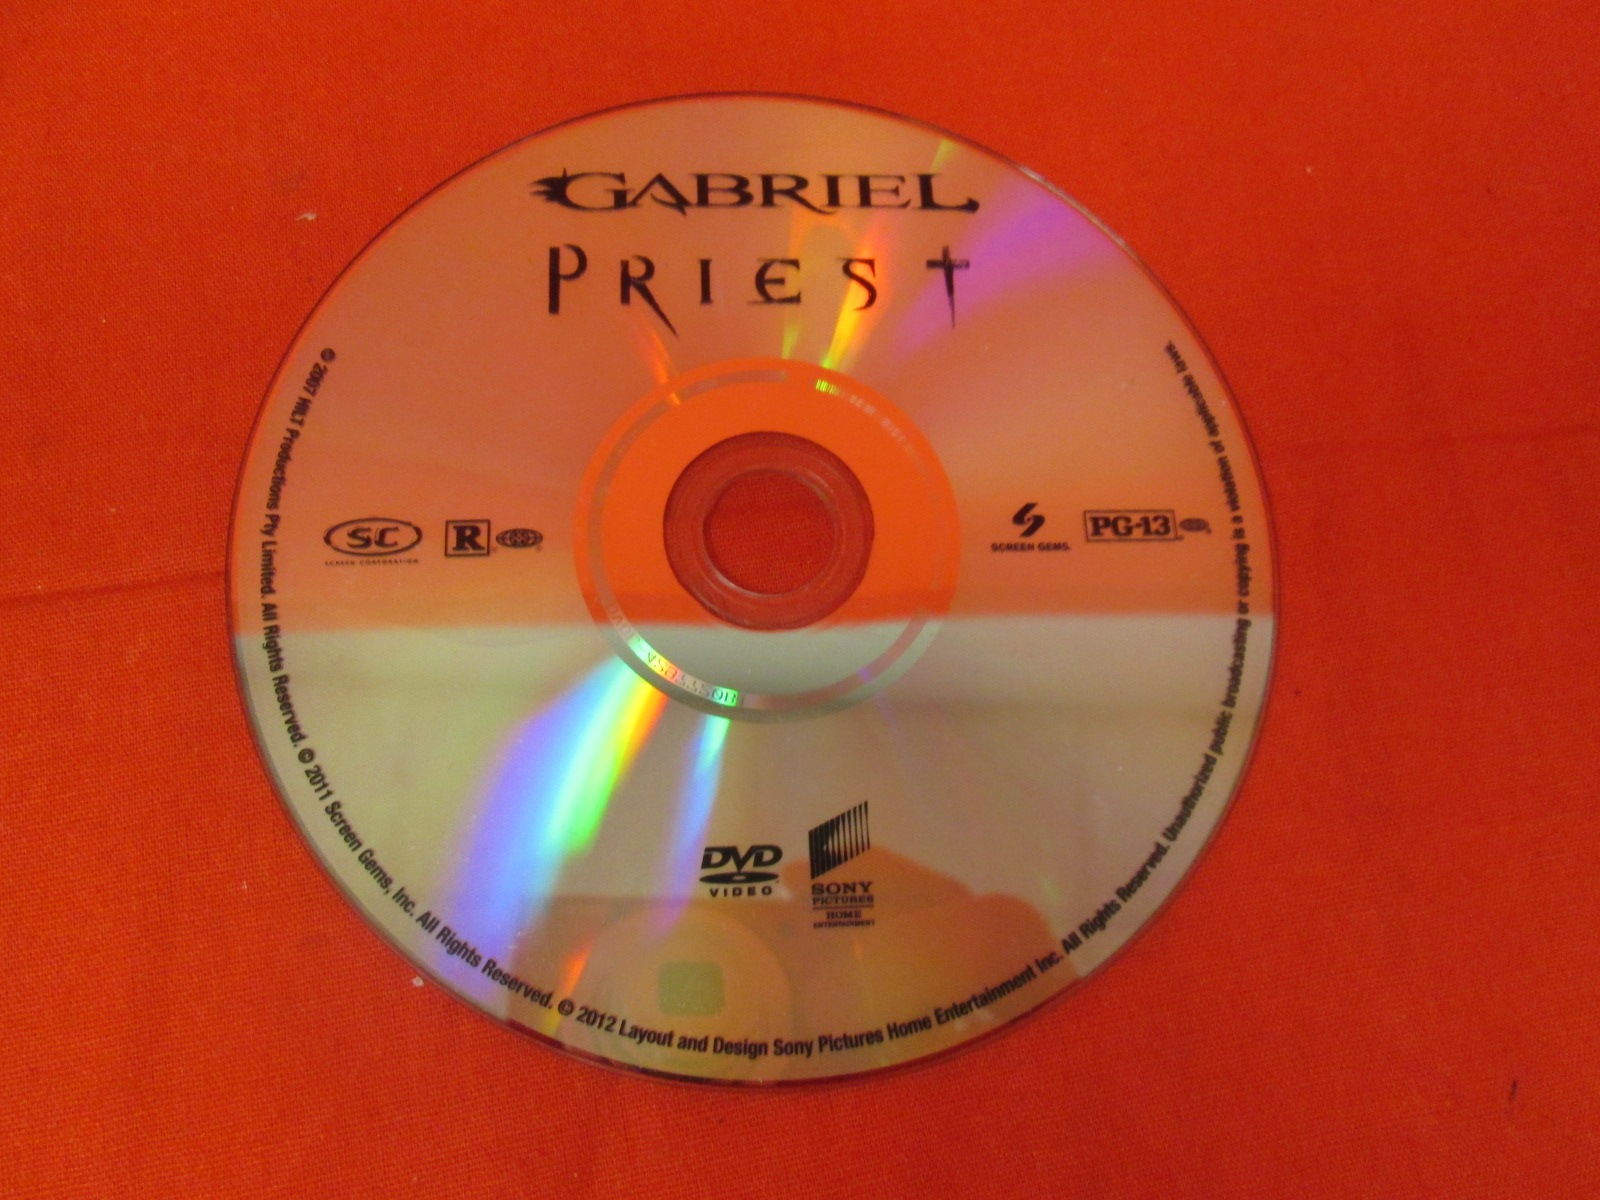 Gabriel 2007 Priest 2011 On DVD With Paul Bettany